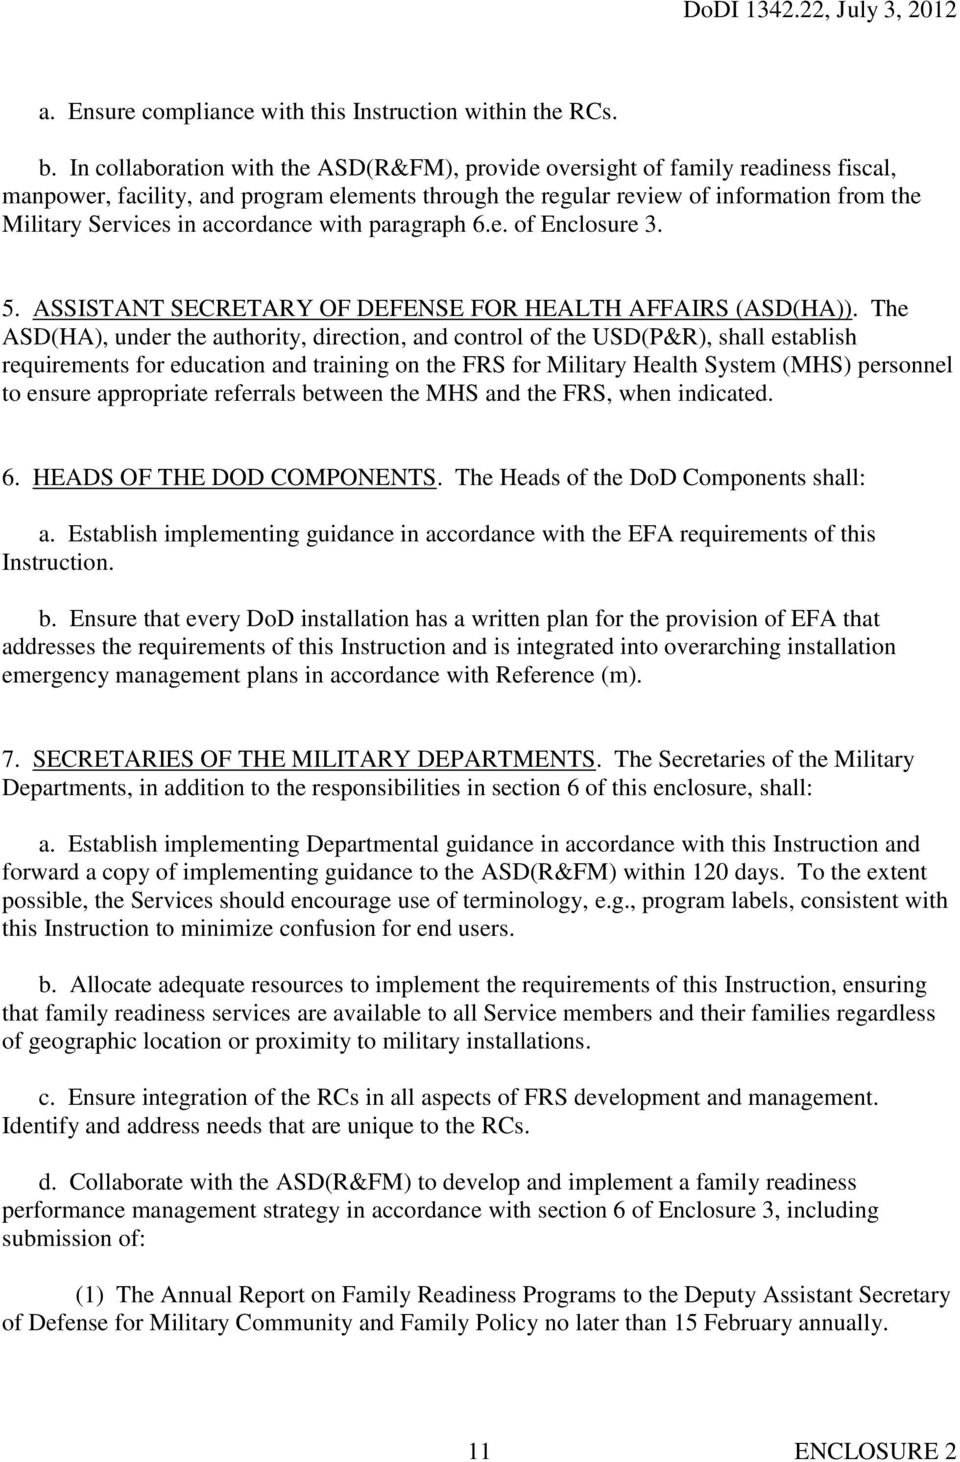 accordance with paragraph 6.e. of Enclosure 3. 5. ASSISTANT SECRETARY OF DEFENSE FOR HEALTH AFFAIRS (ASD(HA)).